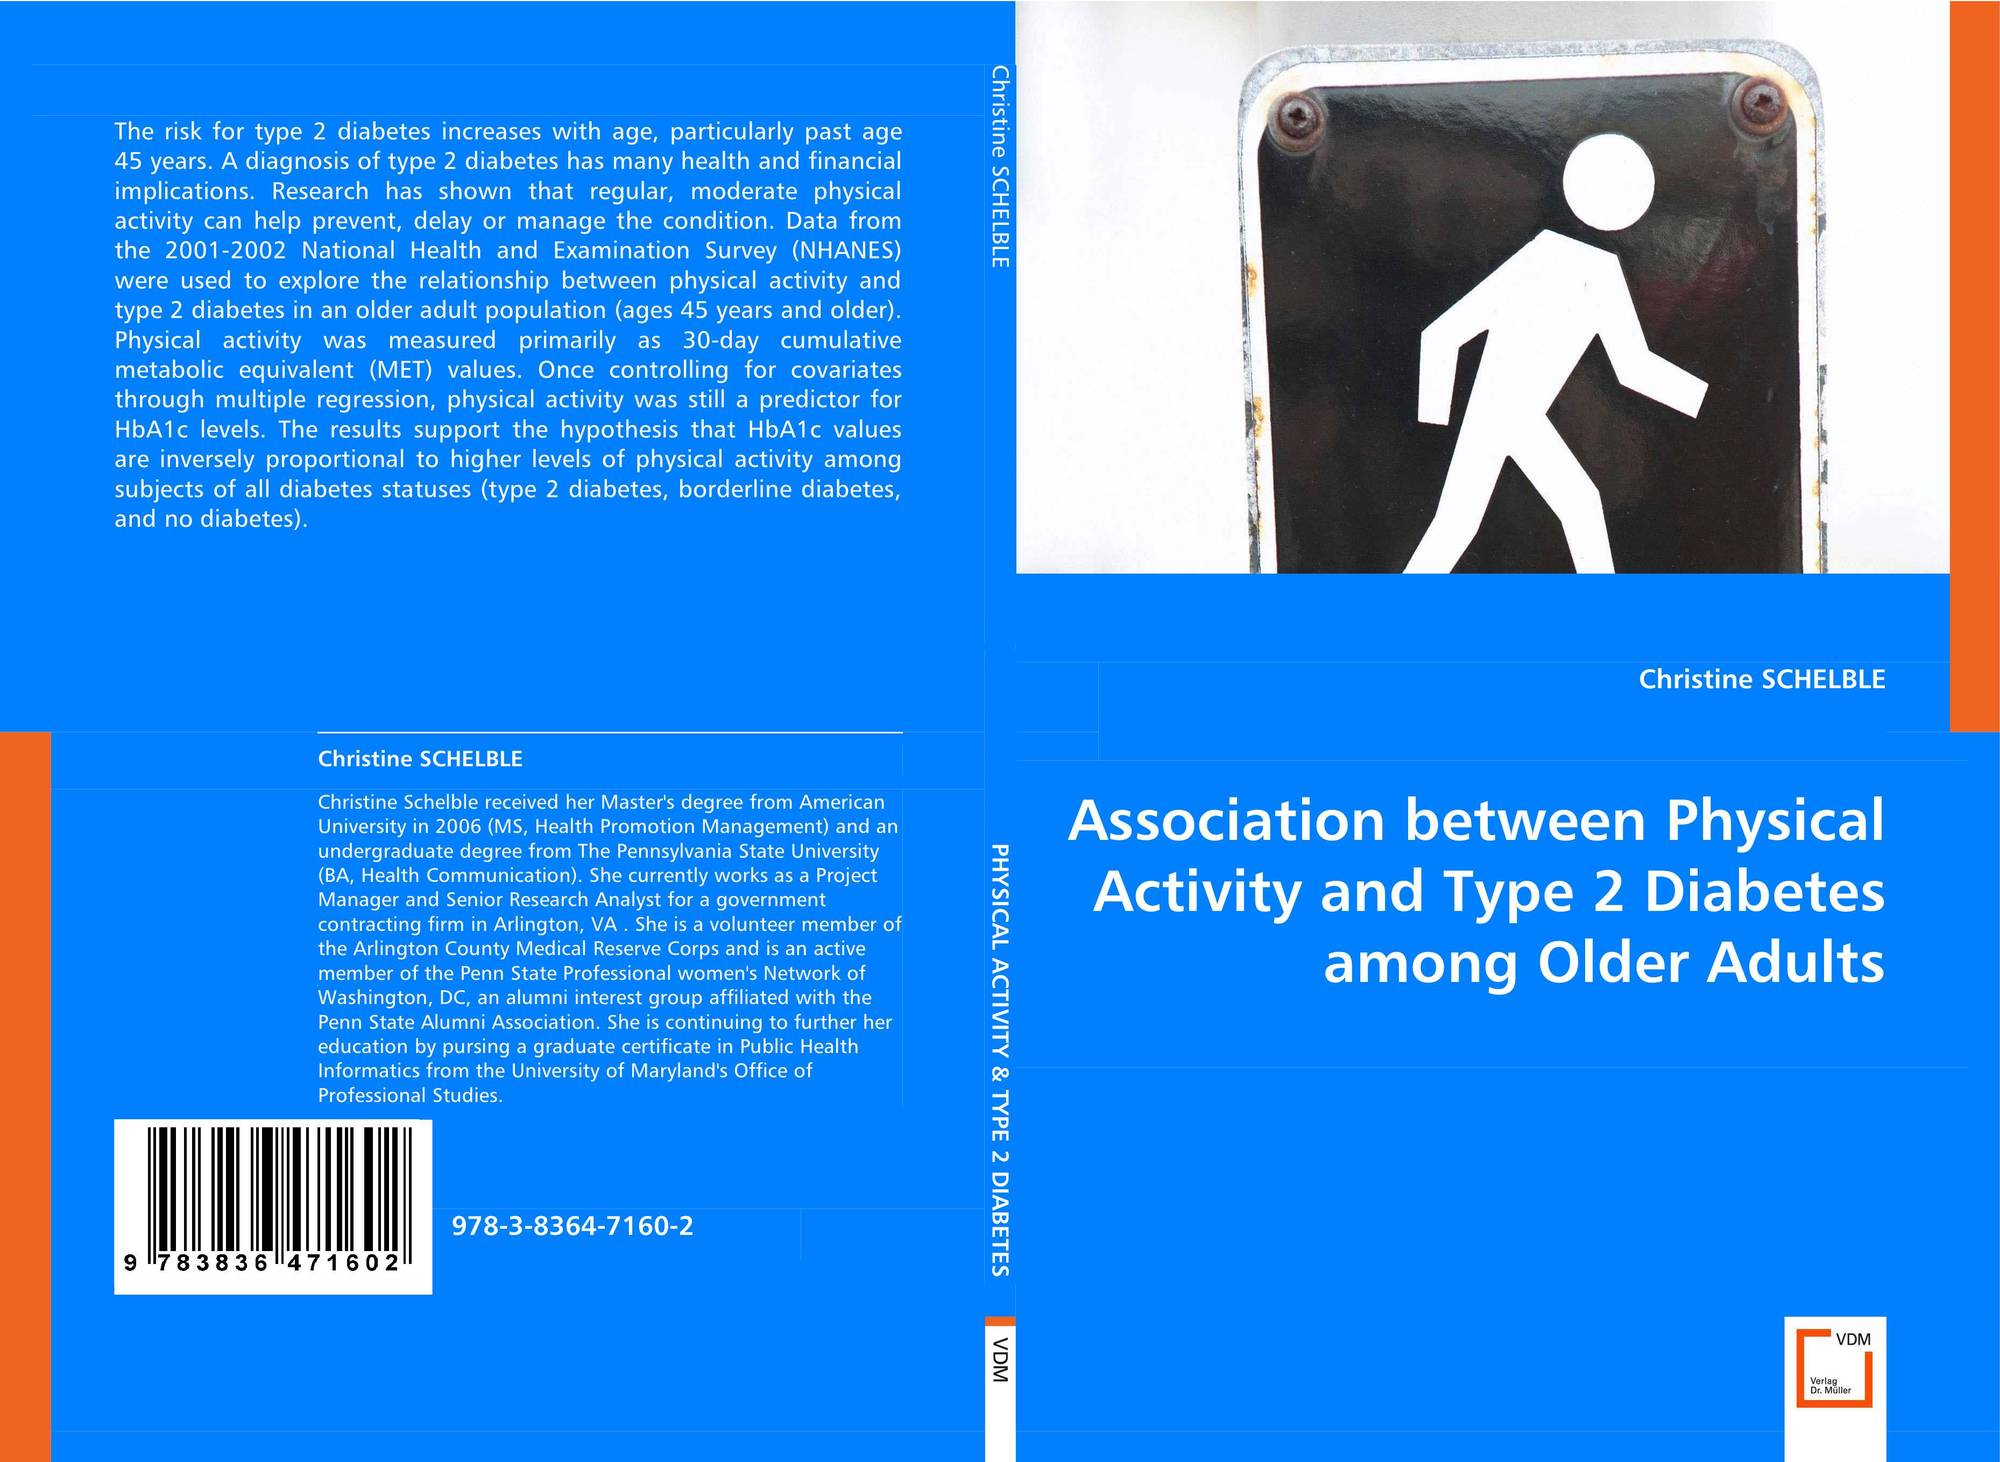 an overview of diabetes type i its health implications and physical activity Or some type of moderate health-enhancing physical by increased physical activity, specifically diabetes time physical activity and its.